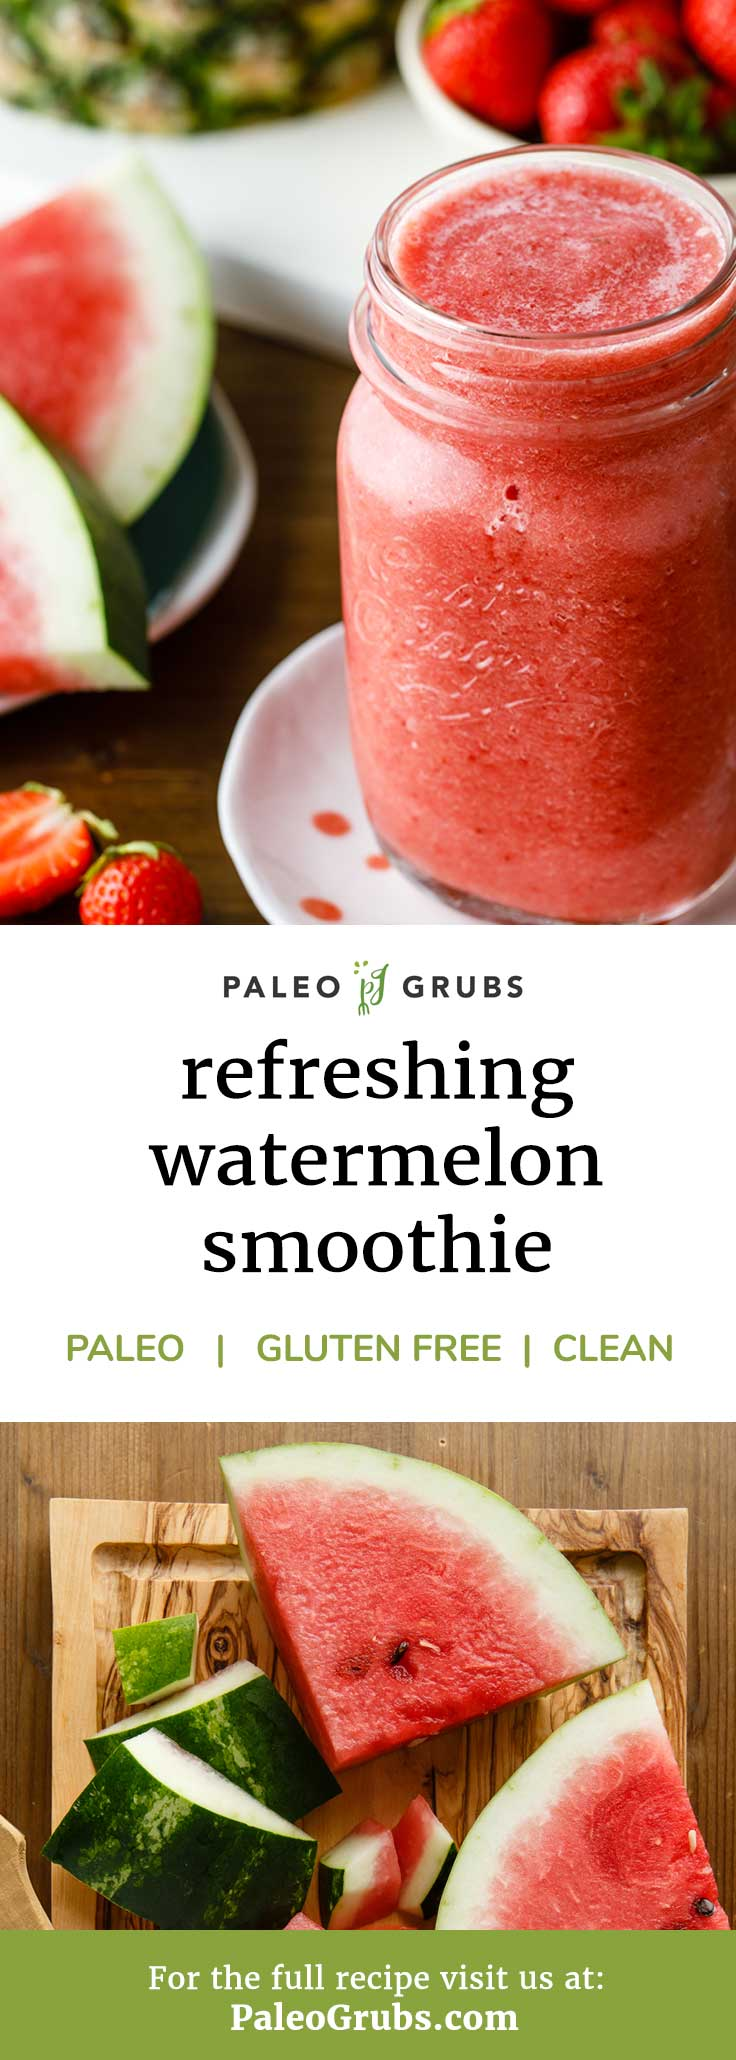 This refreshing paleo pineapple and watermelon smoothie is the perfect low calorie source for daily antioxidants! One of my go to daily smoothies that is both super healthy and yummy too.